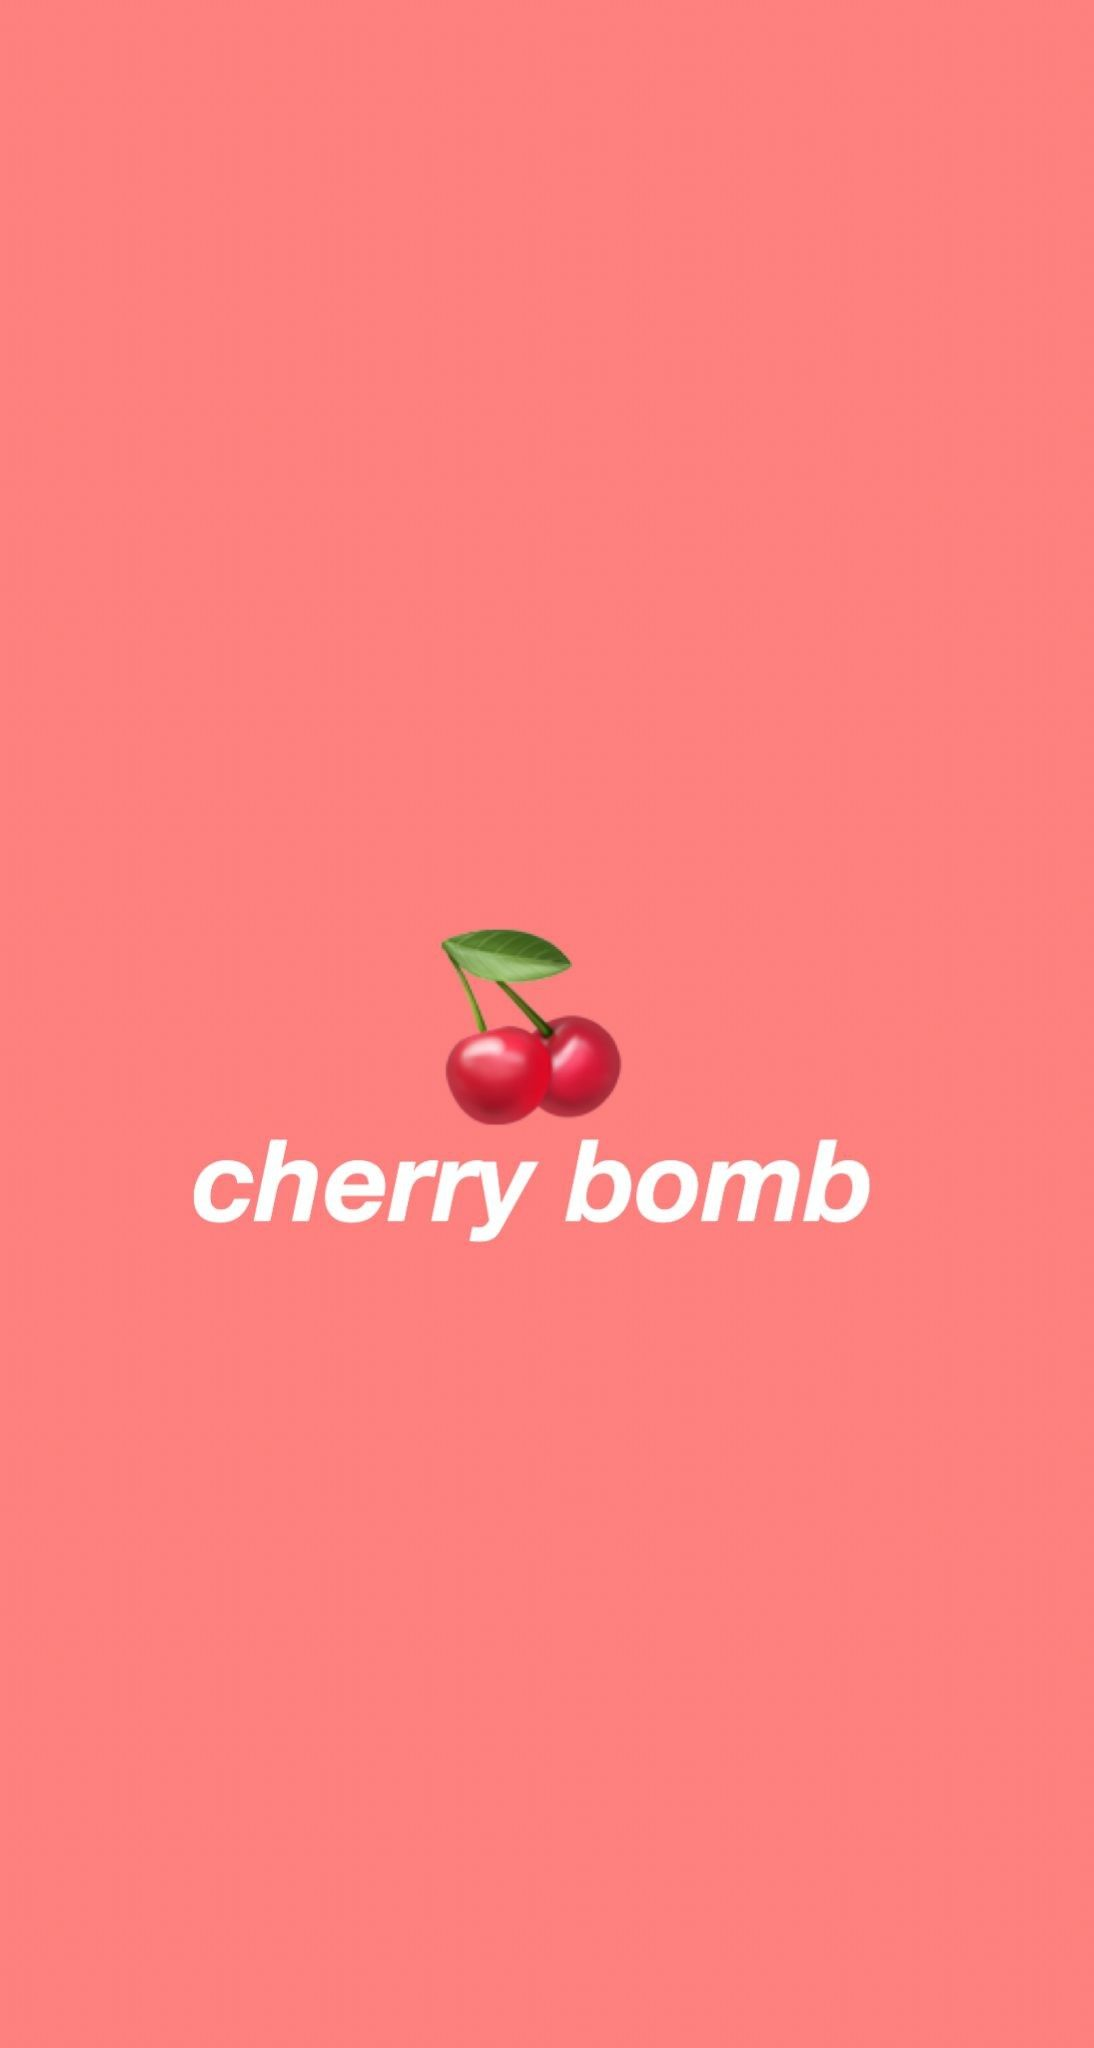 Aesthetic Wallpapers 77 Background Pictures Aesthetic Background Wallpapers Cherry Aesthe Aesthetic Wallpapers Aesthetic Backgrounds Background Pictures